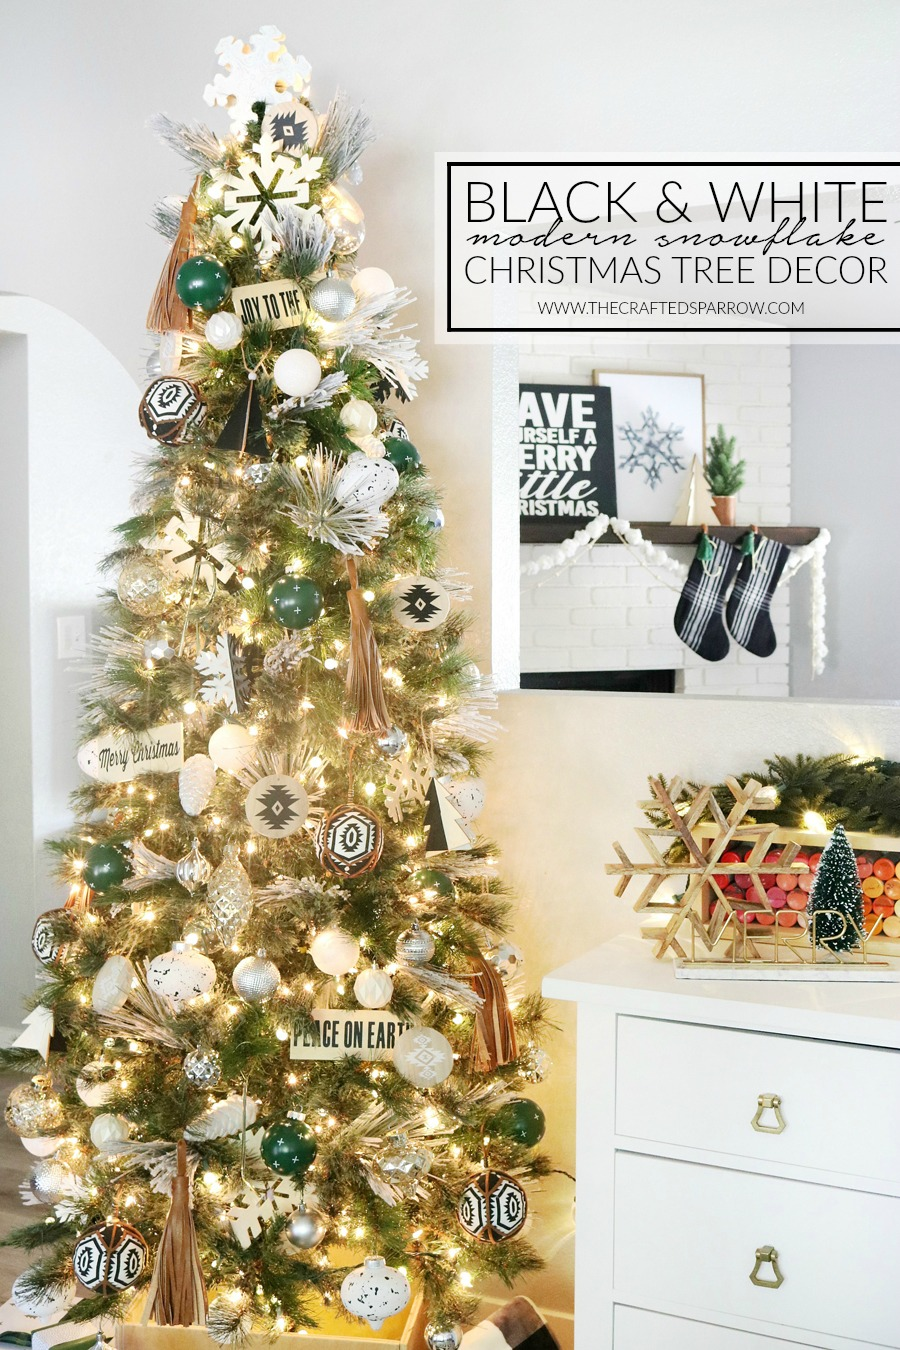 black white modern snowflake christmas tree decor - Photos Of Decorated Christmas Trees